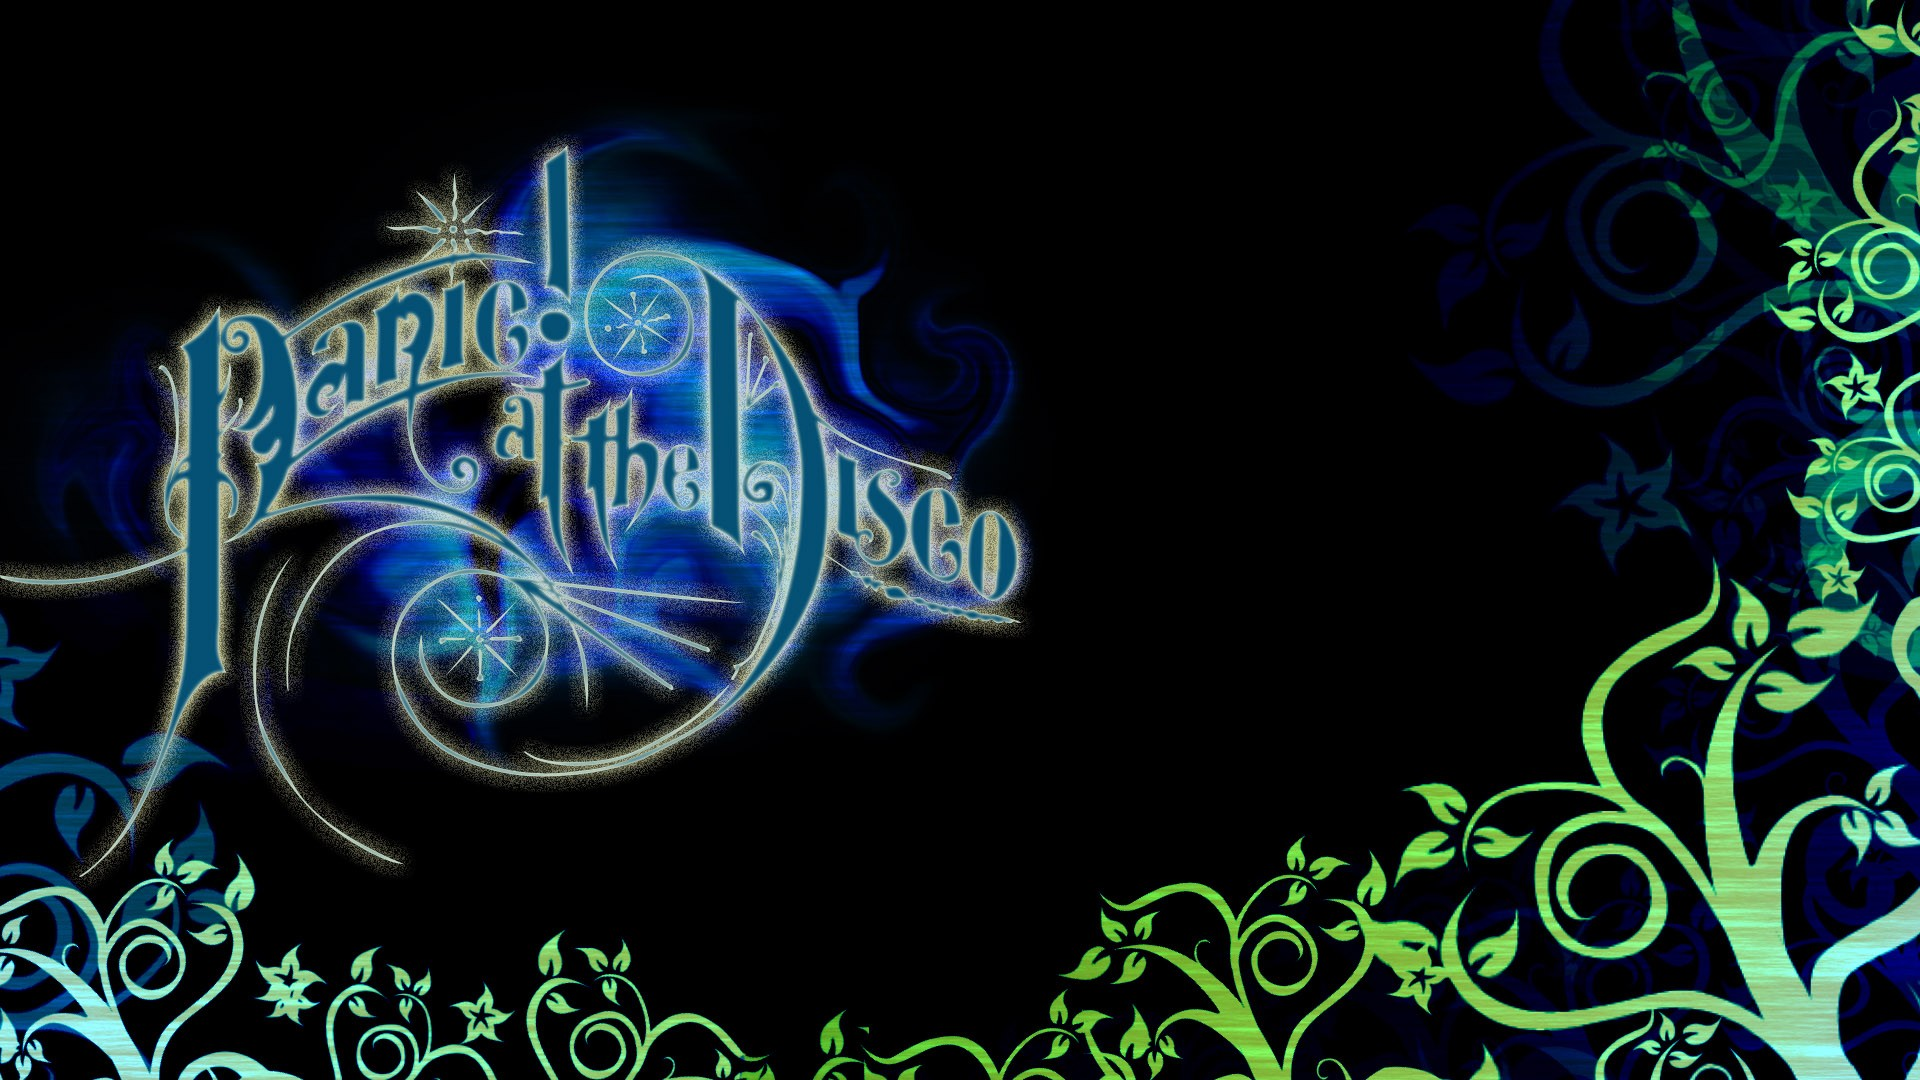 392704 panic at the disco wallpaper 1920x1080 for samsung